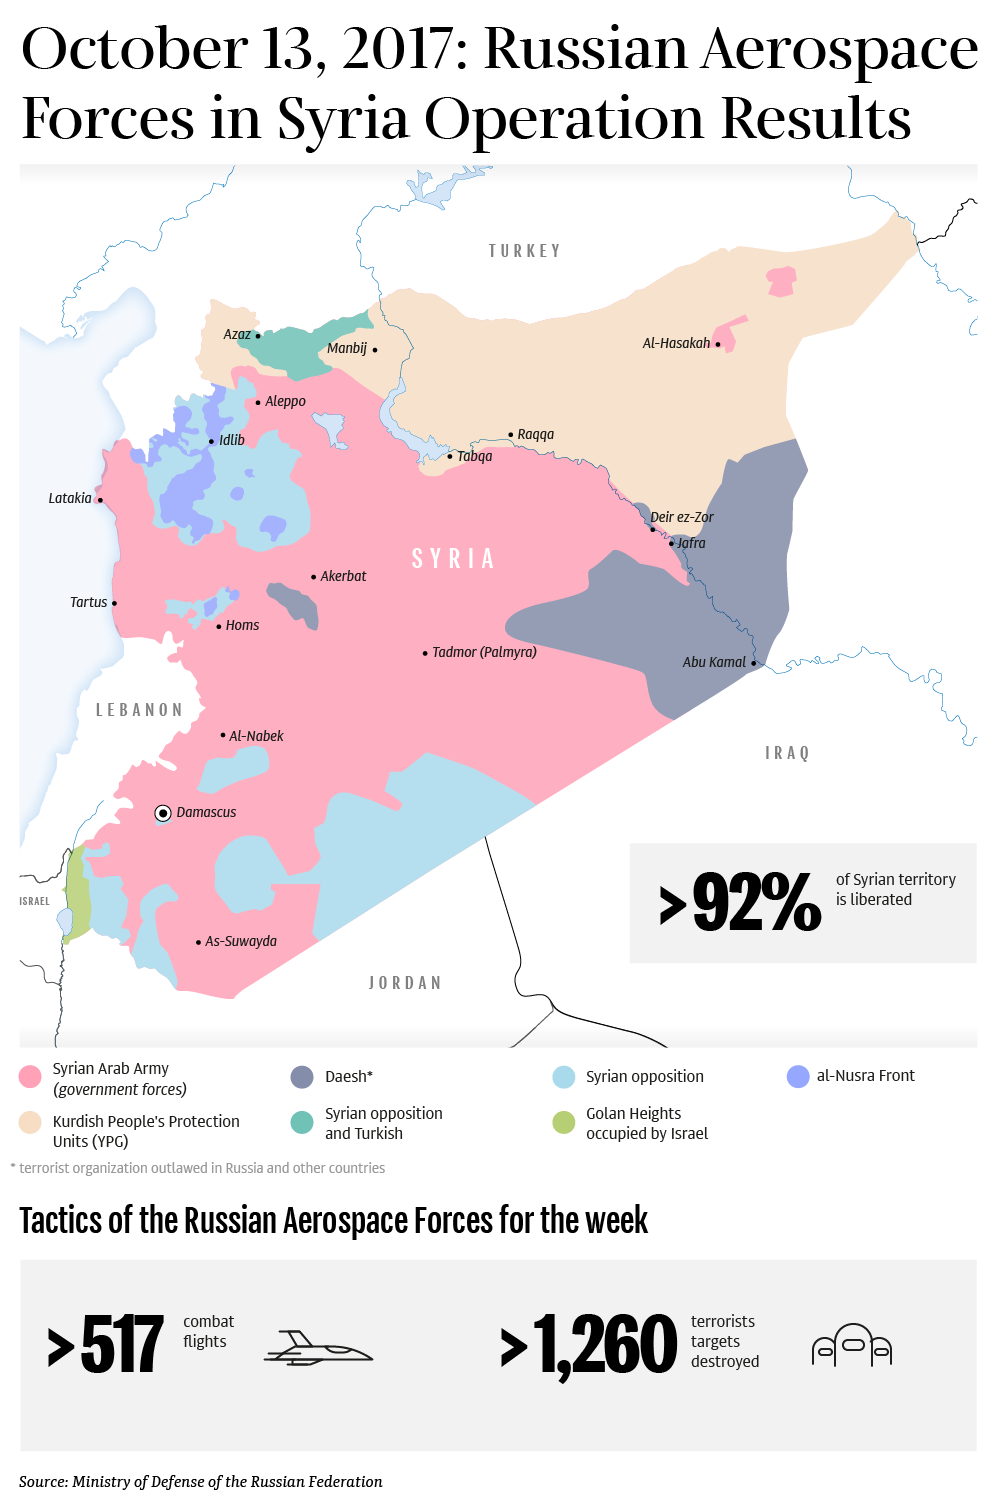 October 13, 2017: Russian Aerospace Forces in Syria Operation Results